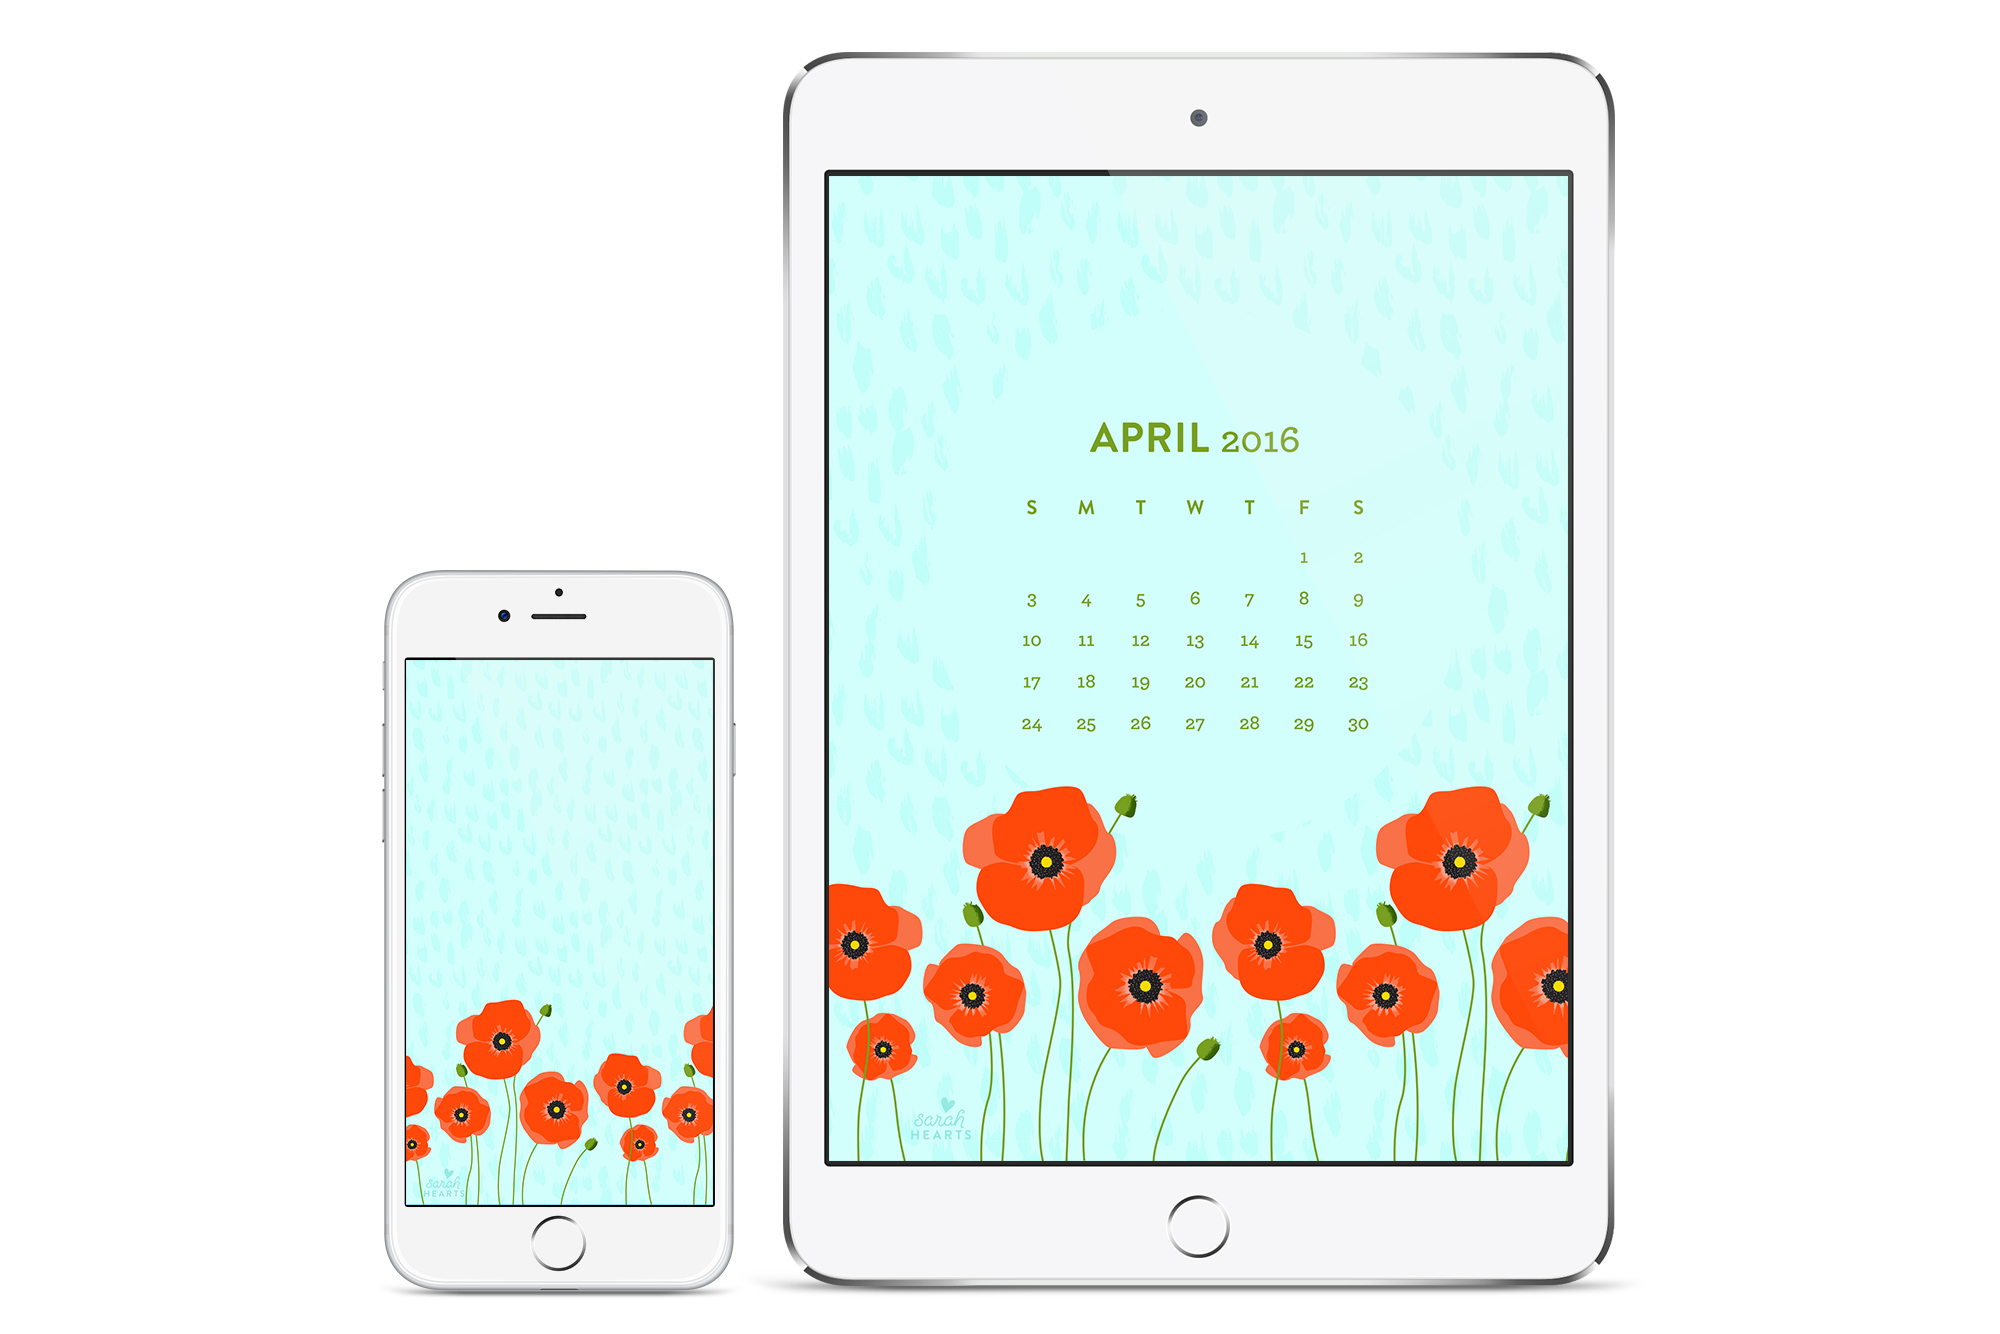 Calendar Wallpaper April Iphone : April poppy calendar wallpaper sarah hearts